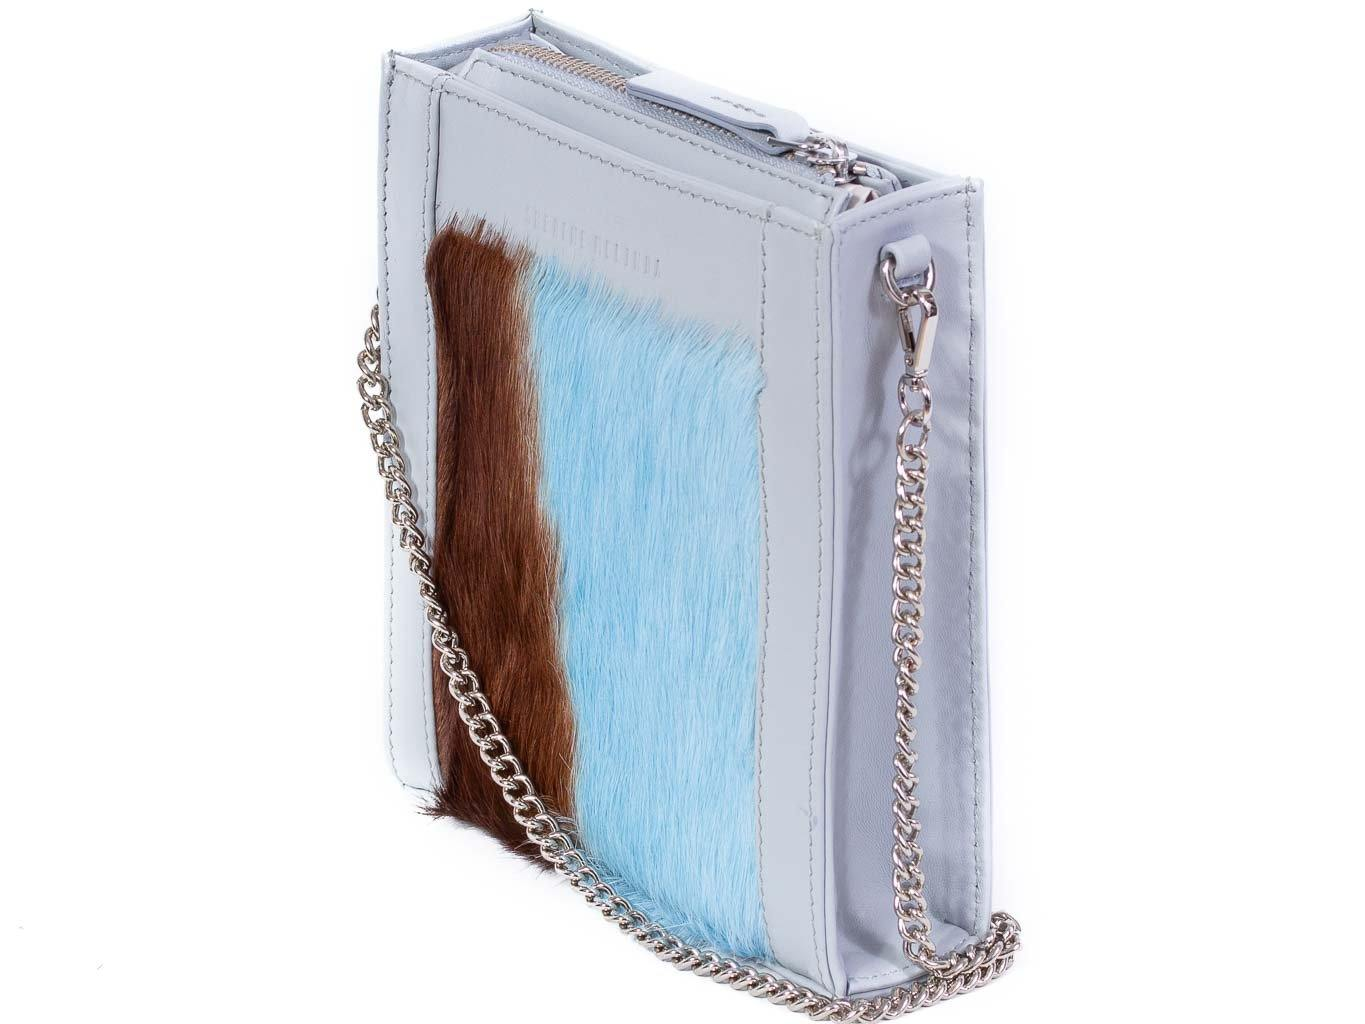 Messenger Springbok Handbag in Baby Blue with a stripe feature by Sherene Melinda front strap